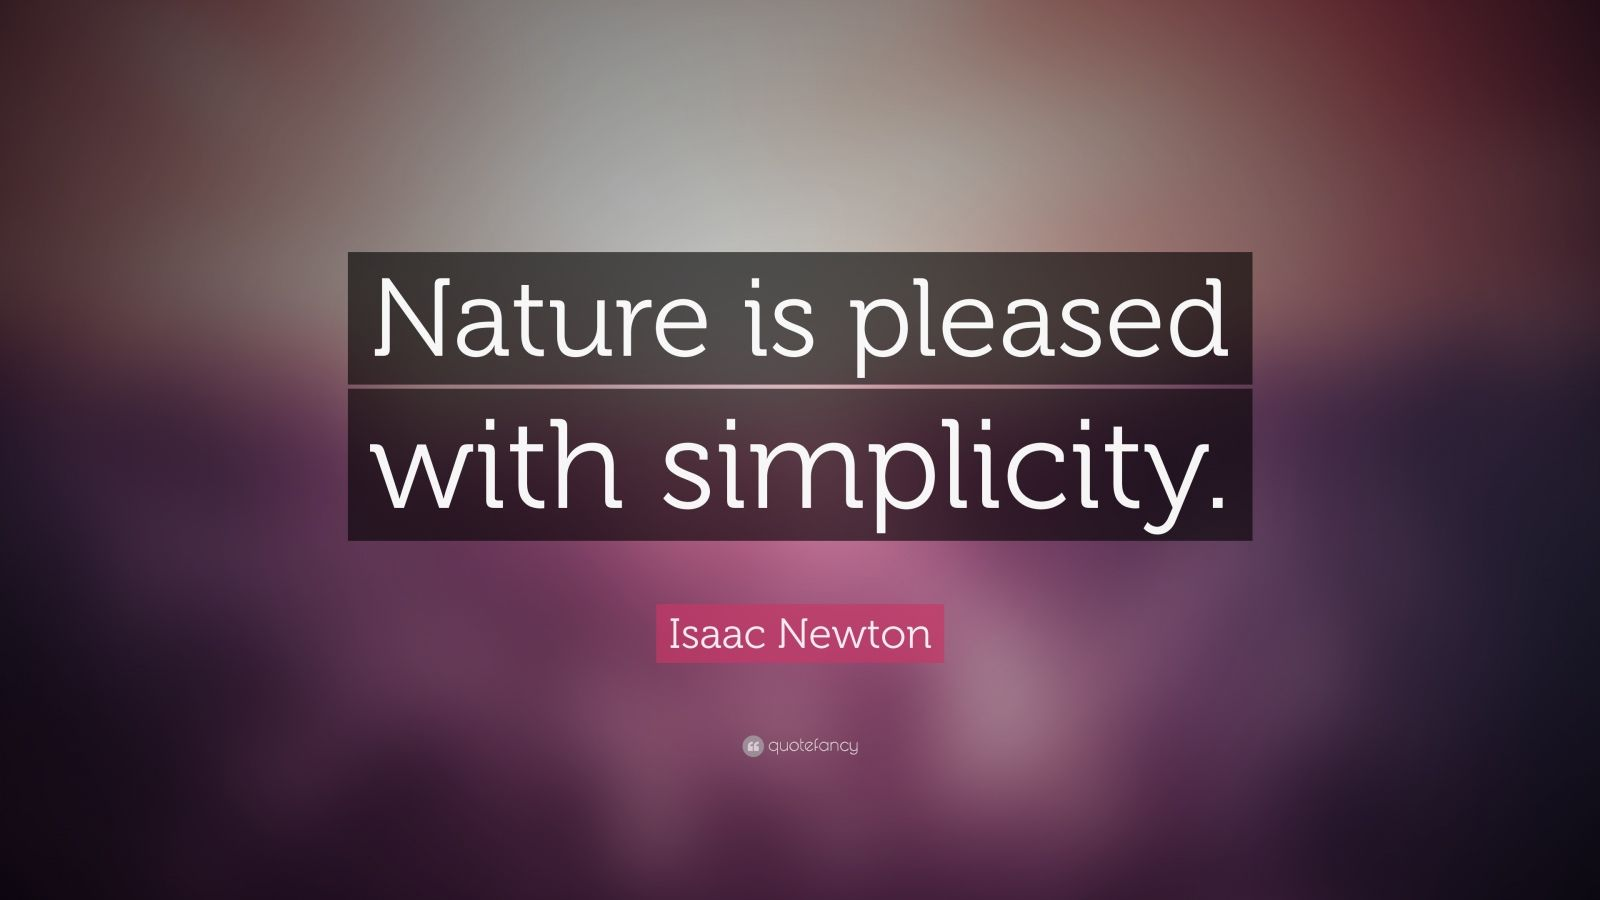 Henry David Thoreau Wallpaper Quote Isaac Newton Quote Nature Is Pleased With Simplicity